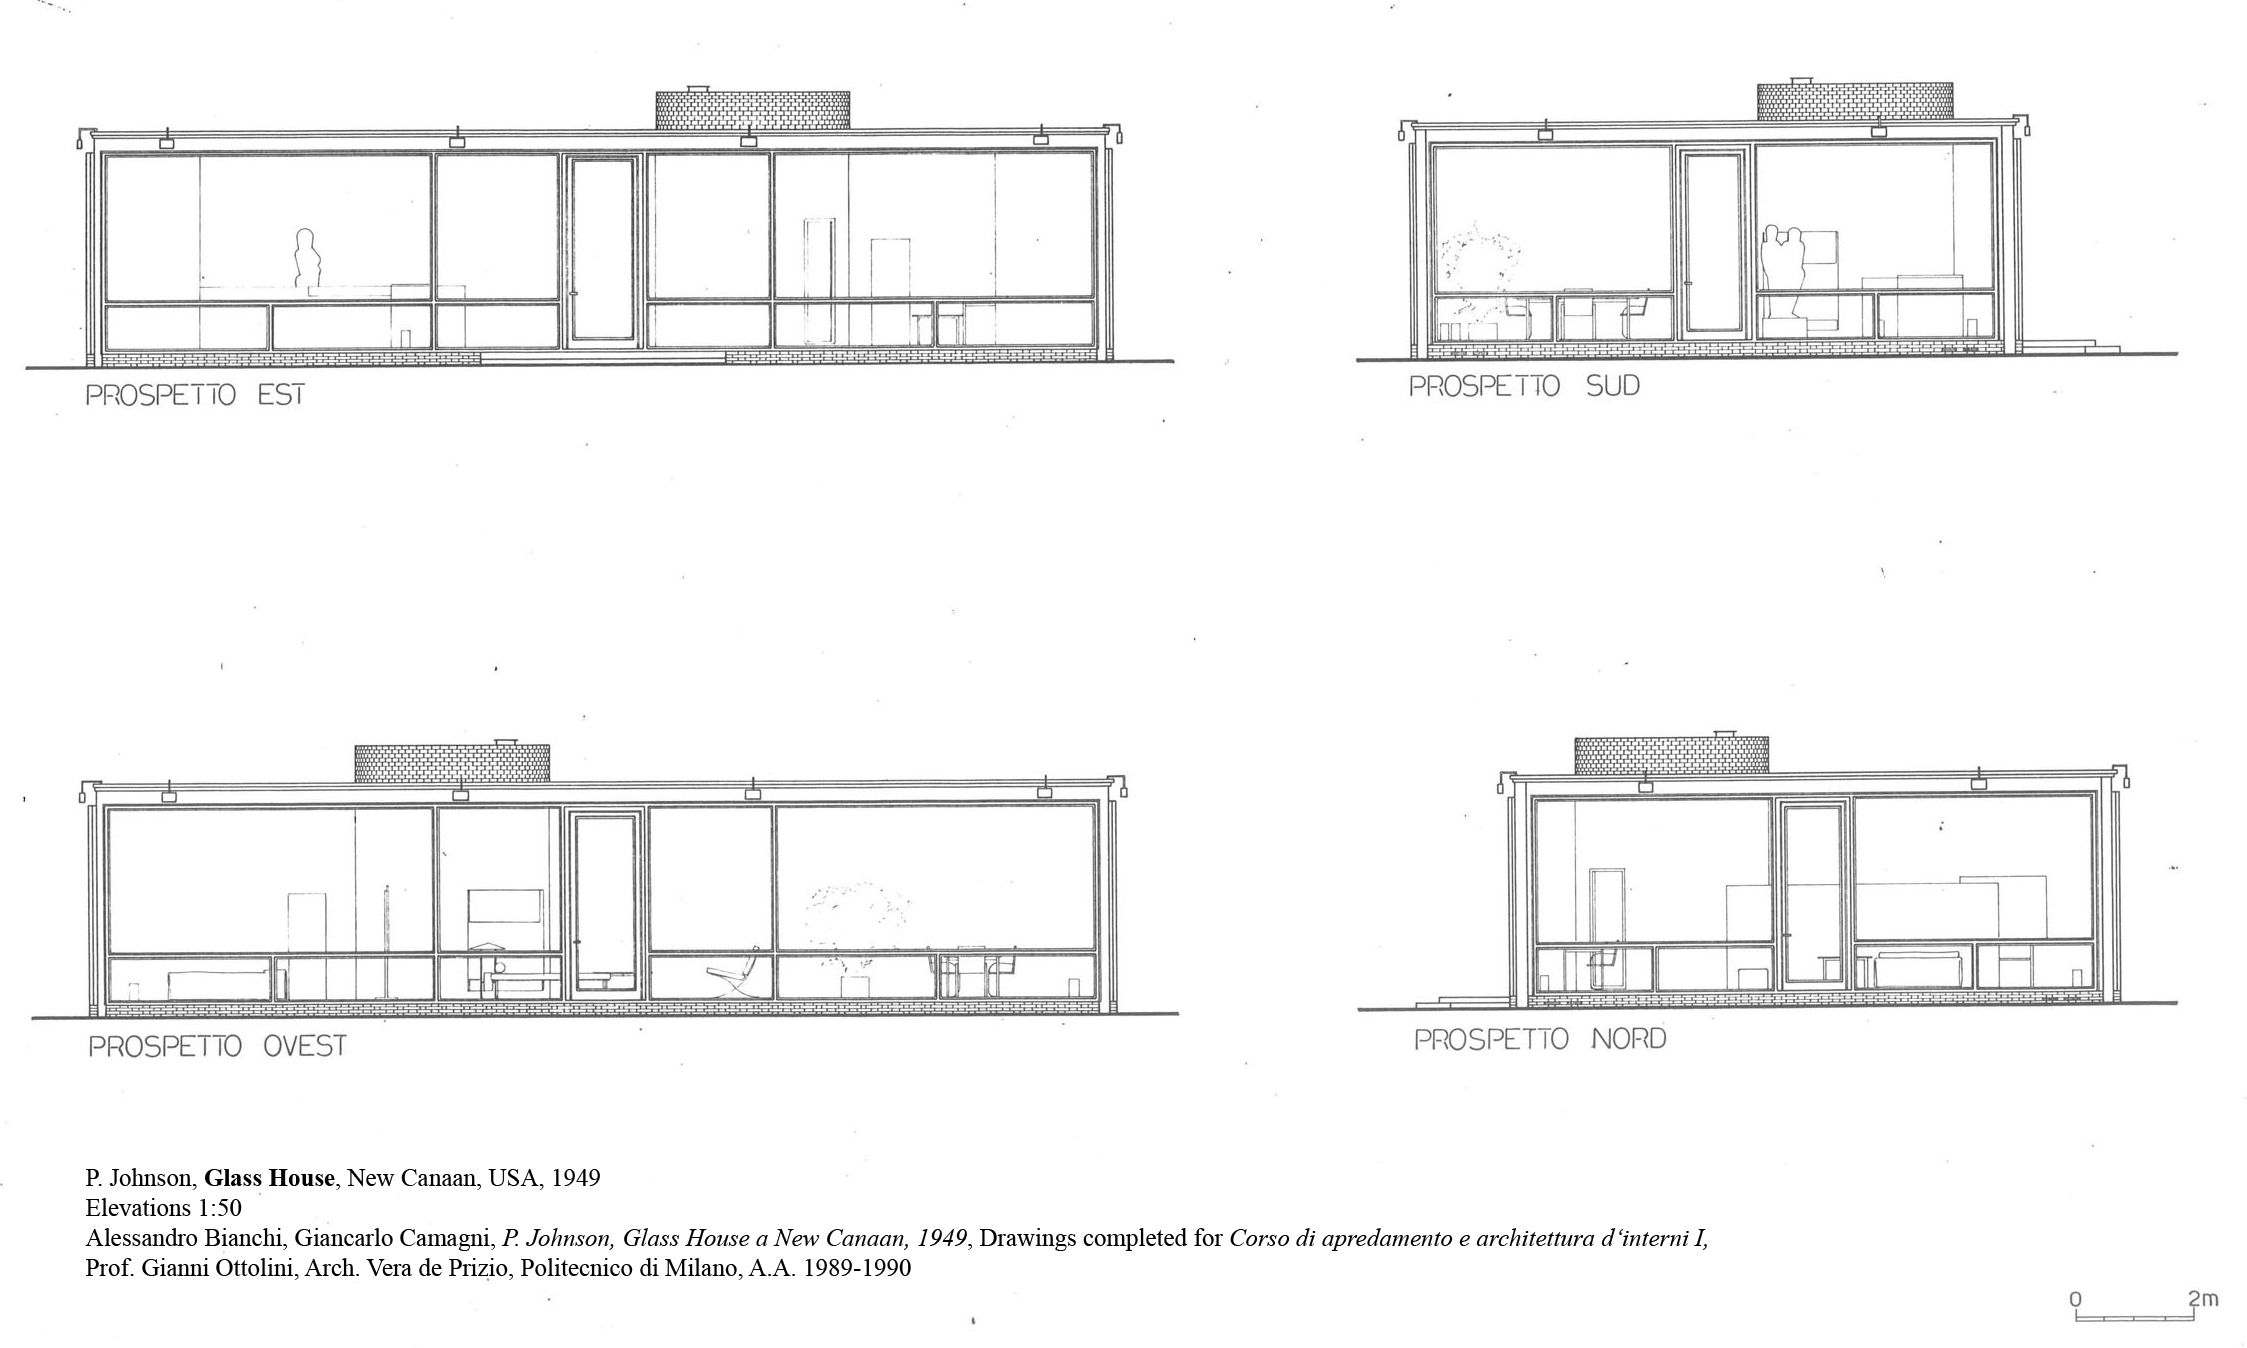 Philip Johnson Glass House New Canaan Usa 1949 Atlas Of Interiors Philip Johnson Glass House Philip Johnson Glass House